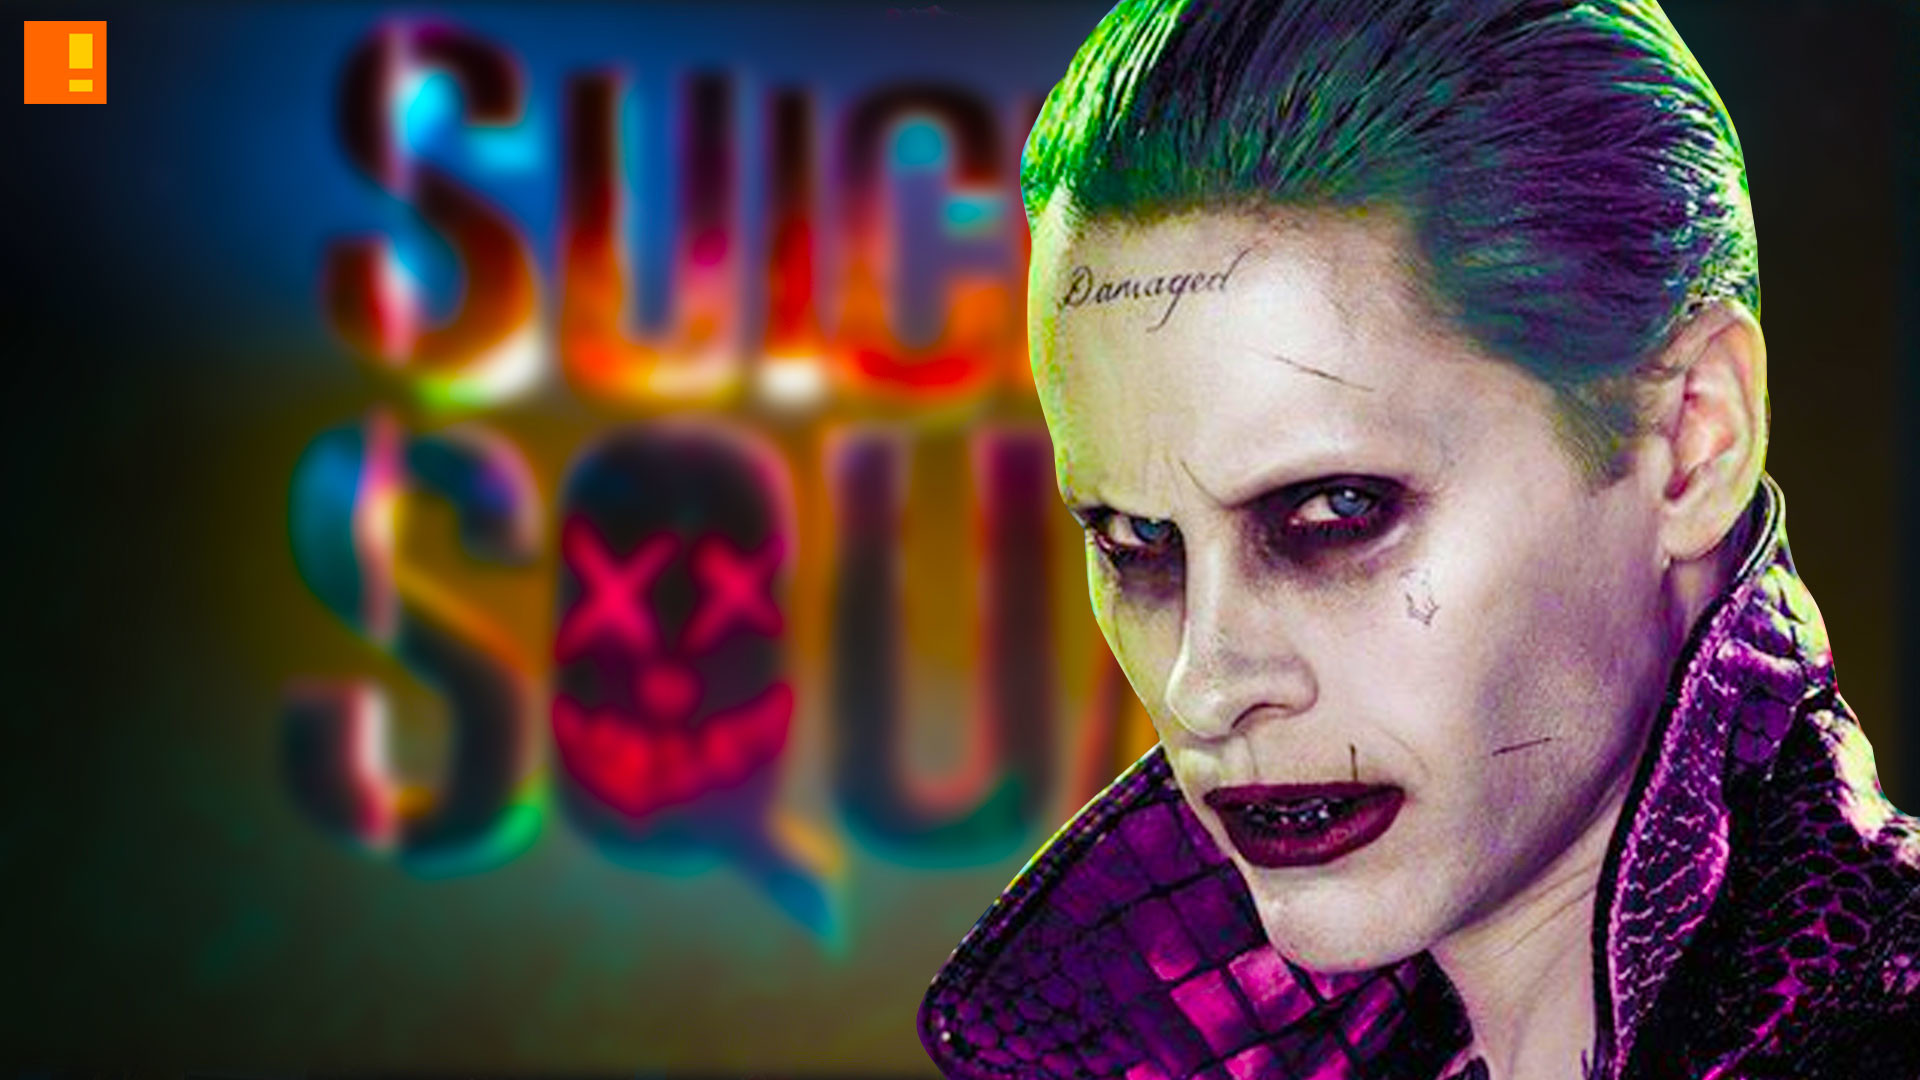 suicide squad, joker, banner, poster, entertainment on tap, the action pixel